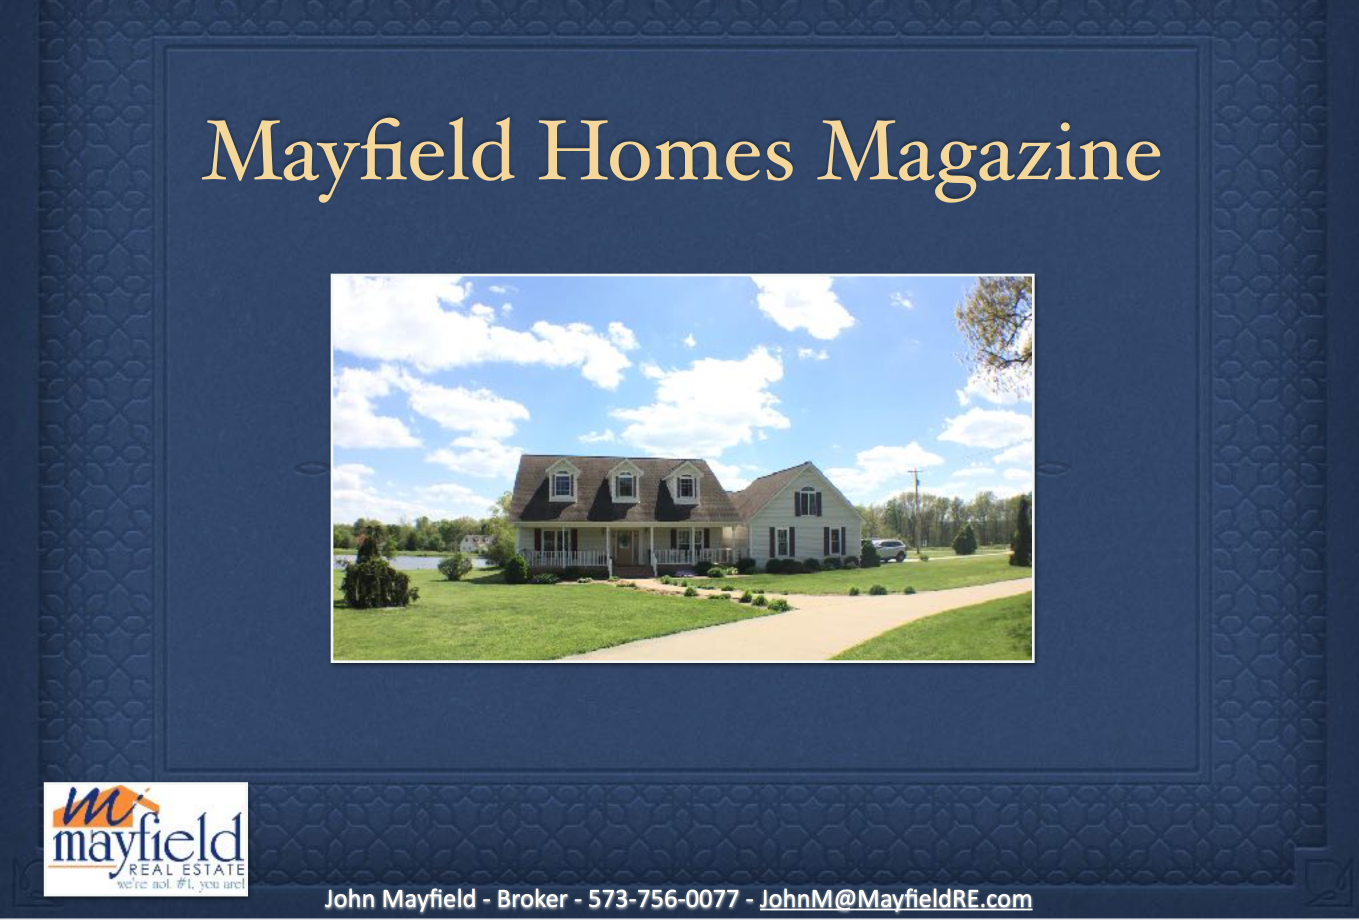 Download The Homes Magazine Here